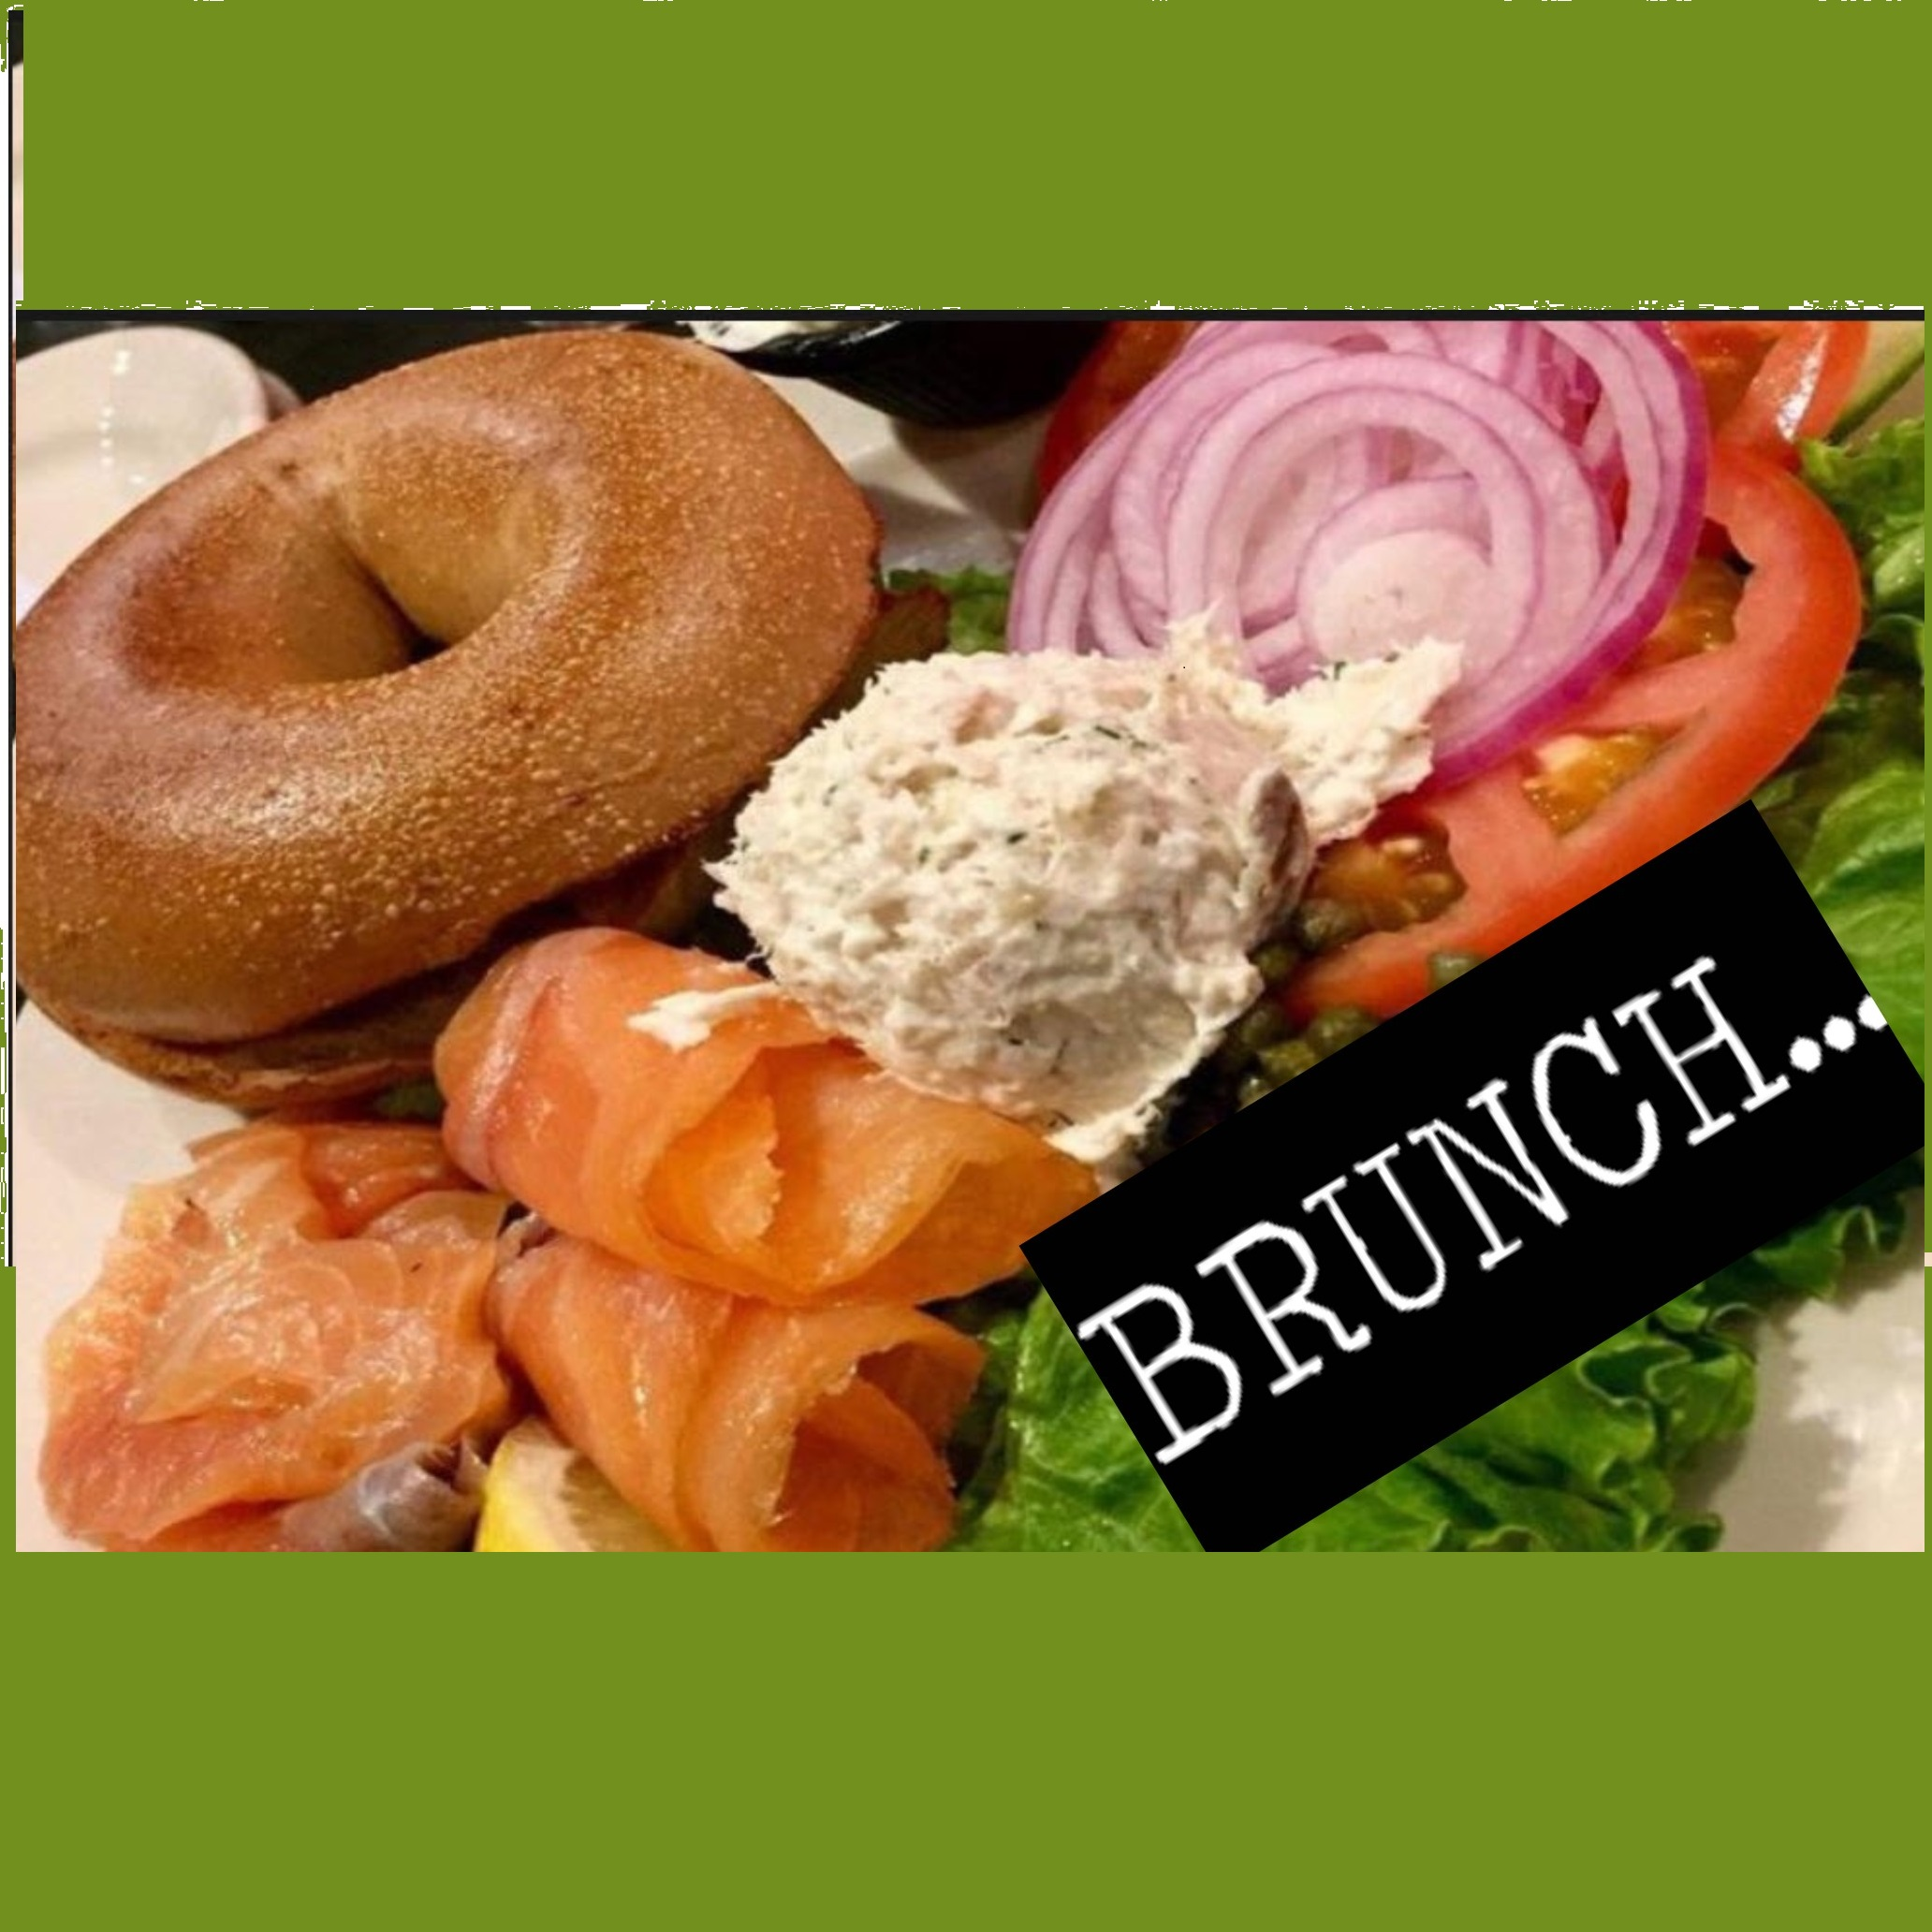 Brunch with Debbie CenziperSun, March 29 (9-10:30 am)Jointly sponsored by WTBA and Brotherhood